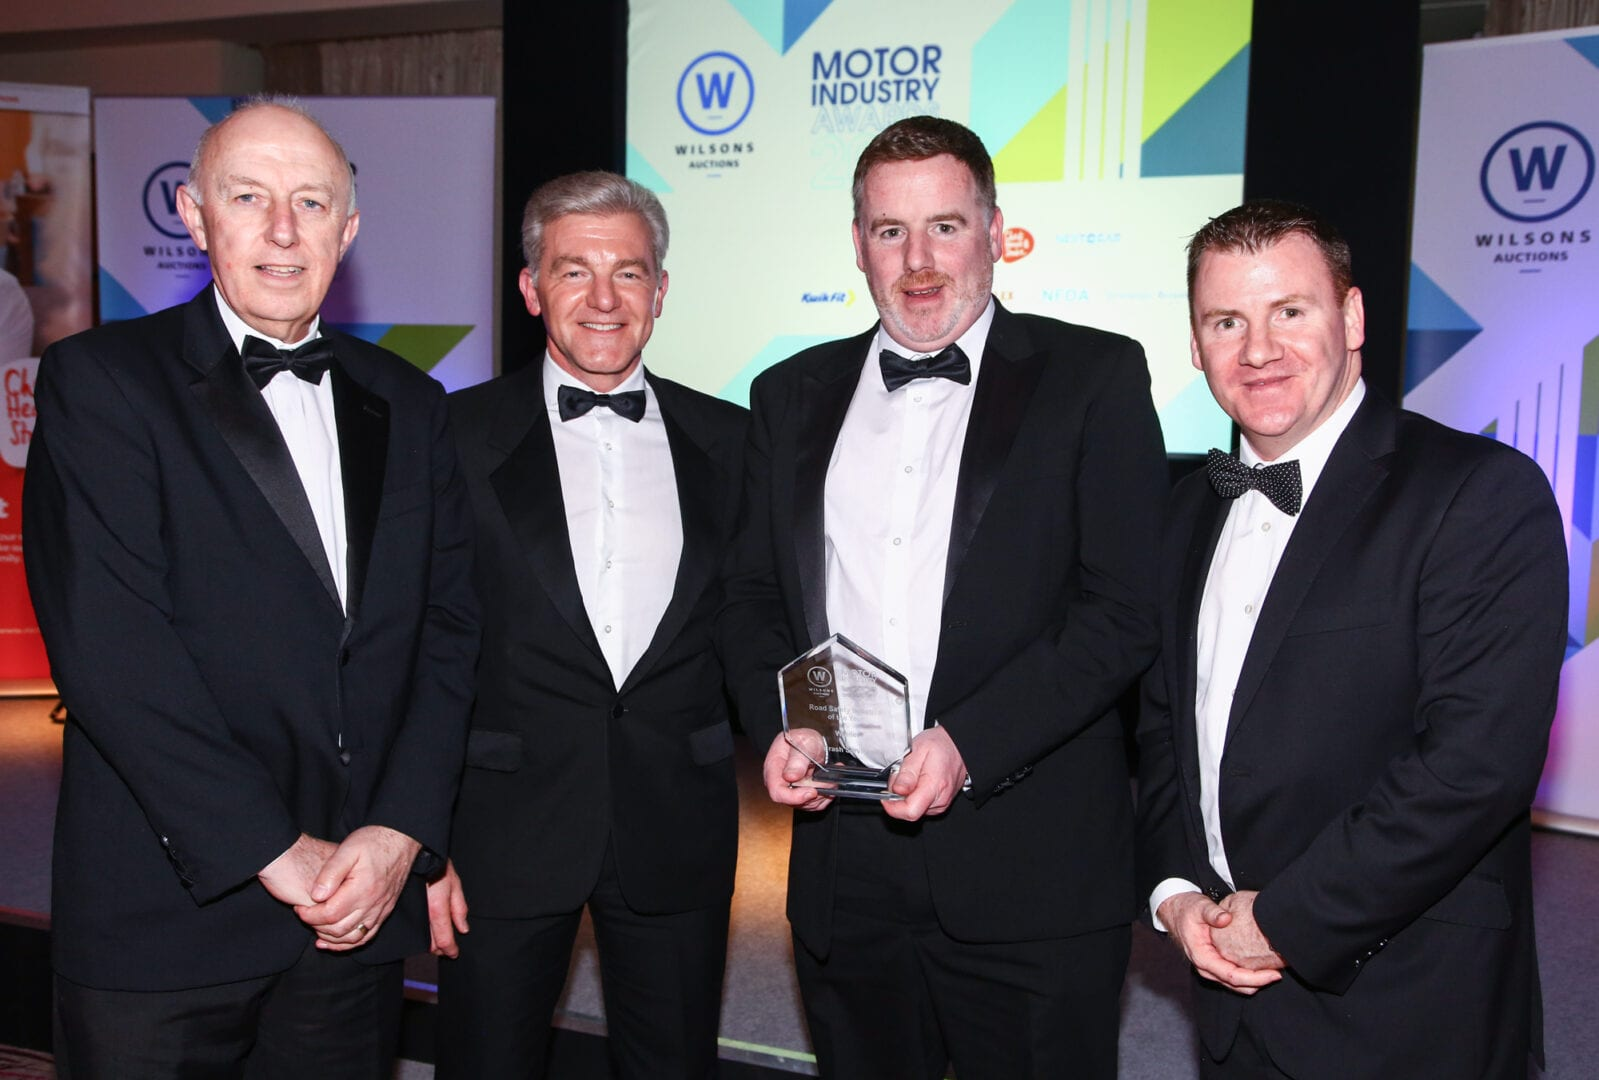 CRASH honoured at NI Motor Industry awards